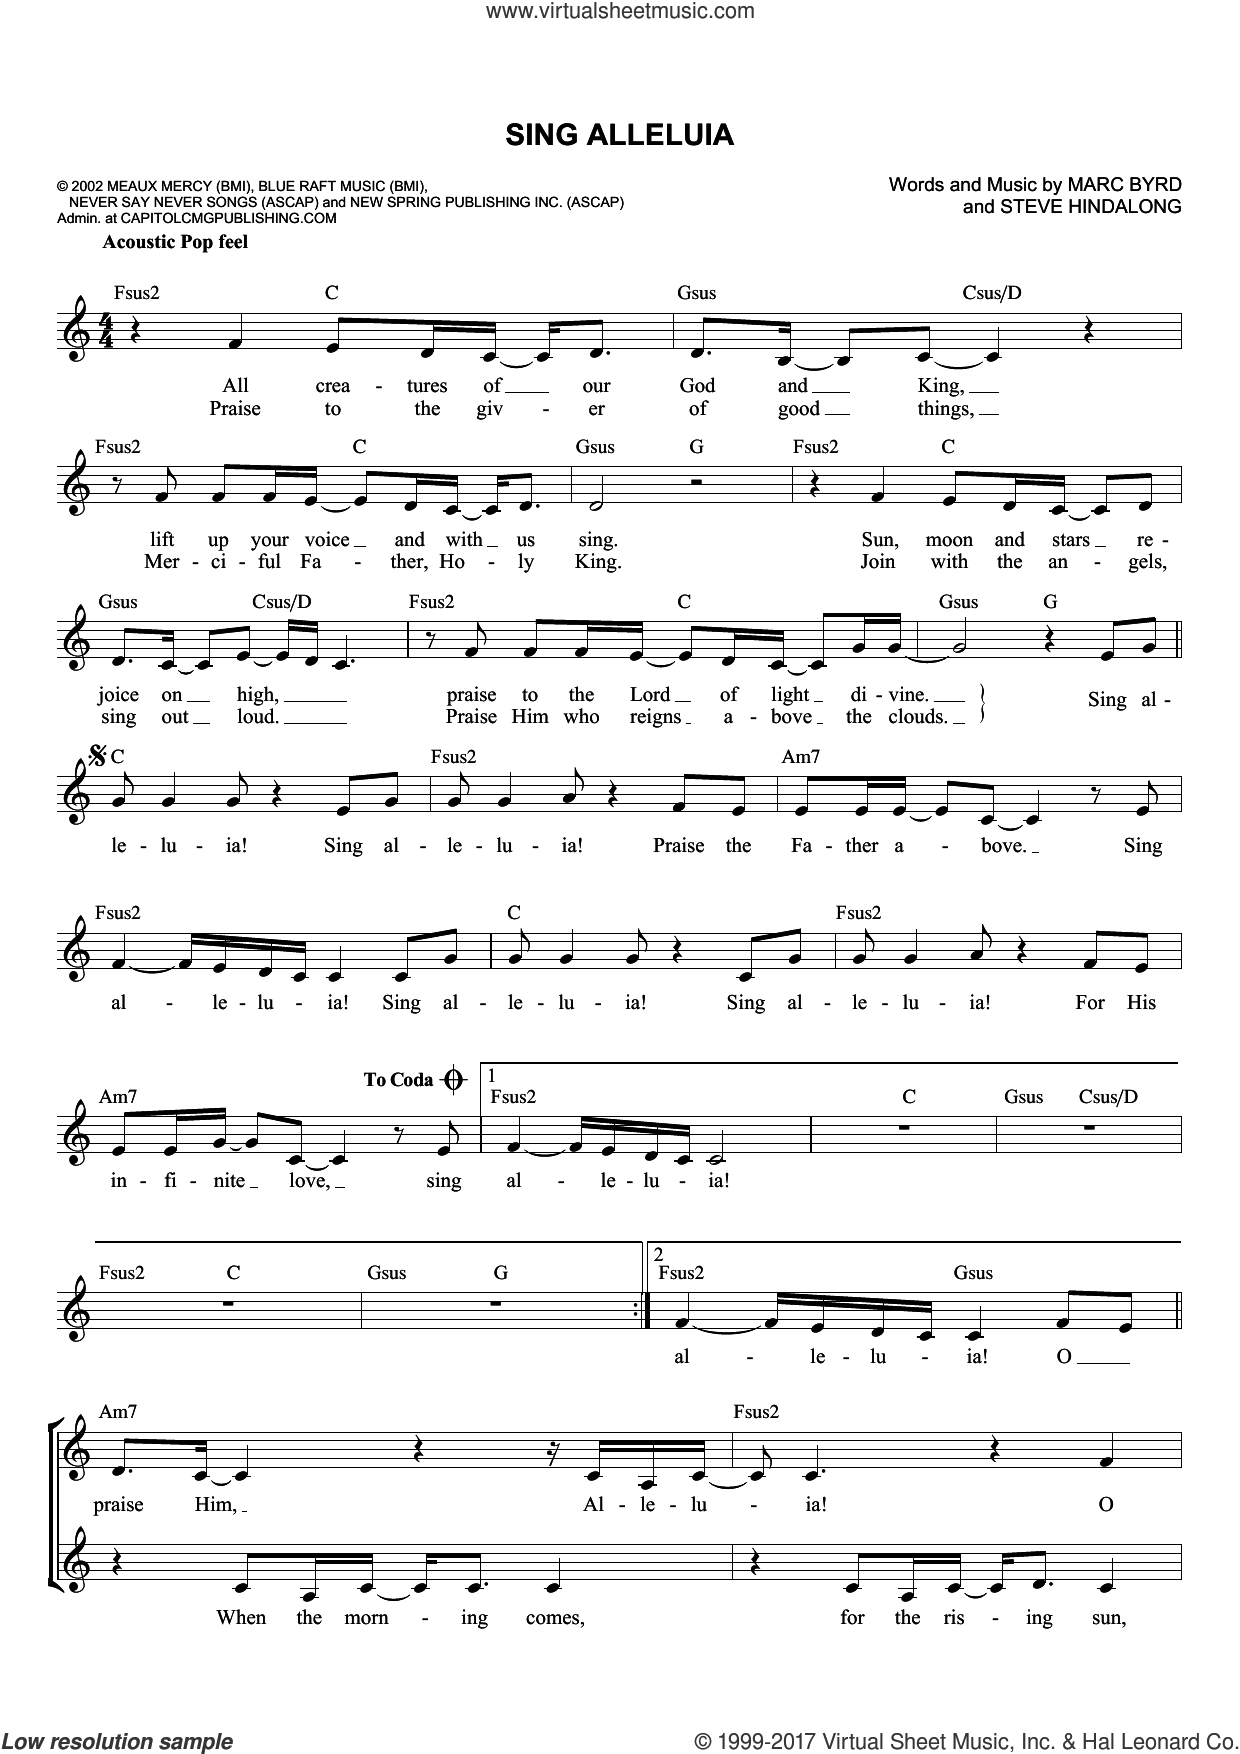 Sing Alleluia sheet music for voice and other instruments (fake book) by Marc Byrd and Steve Hindalong, intermediate skill level